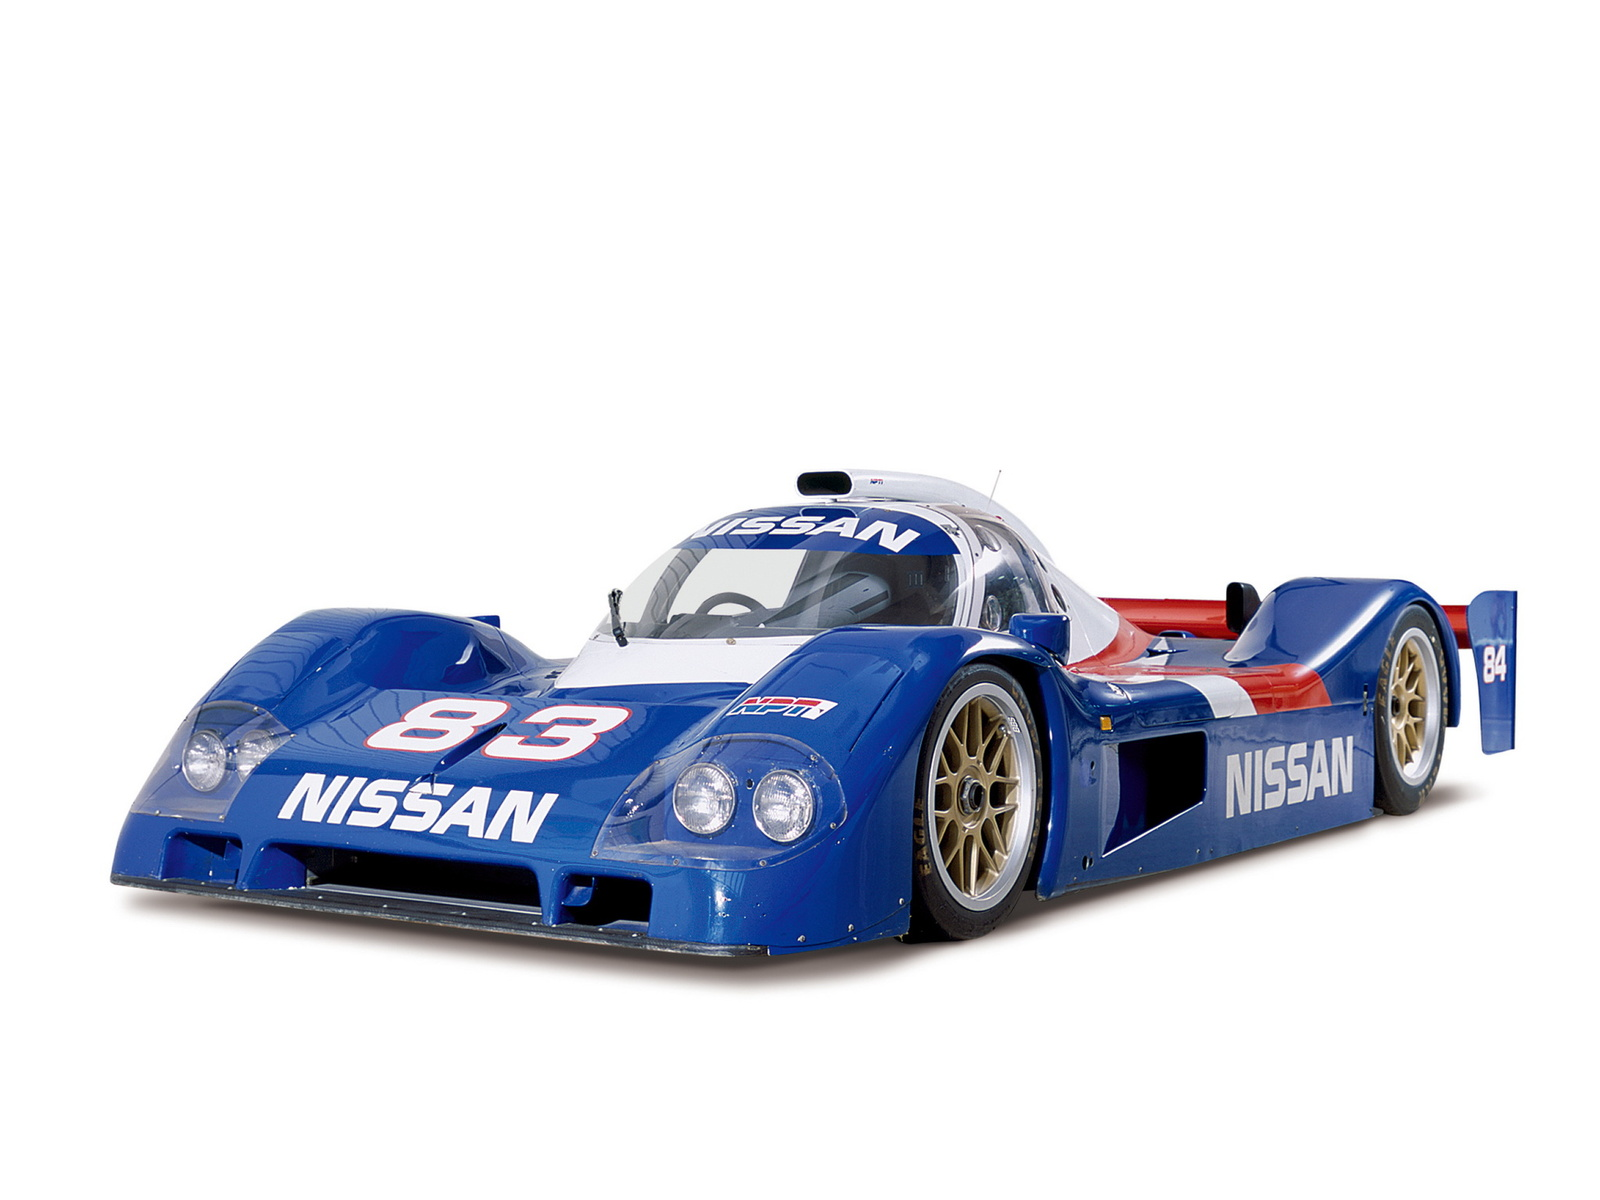 1991 nissan p35 le mans race racing b wallpaper 1600x1200 141271 wallpaperup. Black Bedroom Furniture Sets. Home Design Ideas